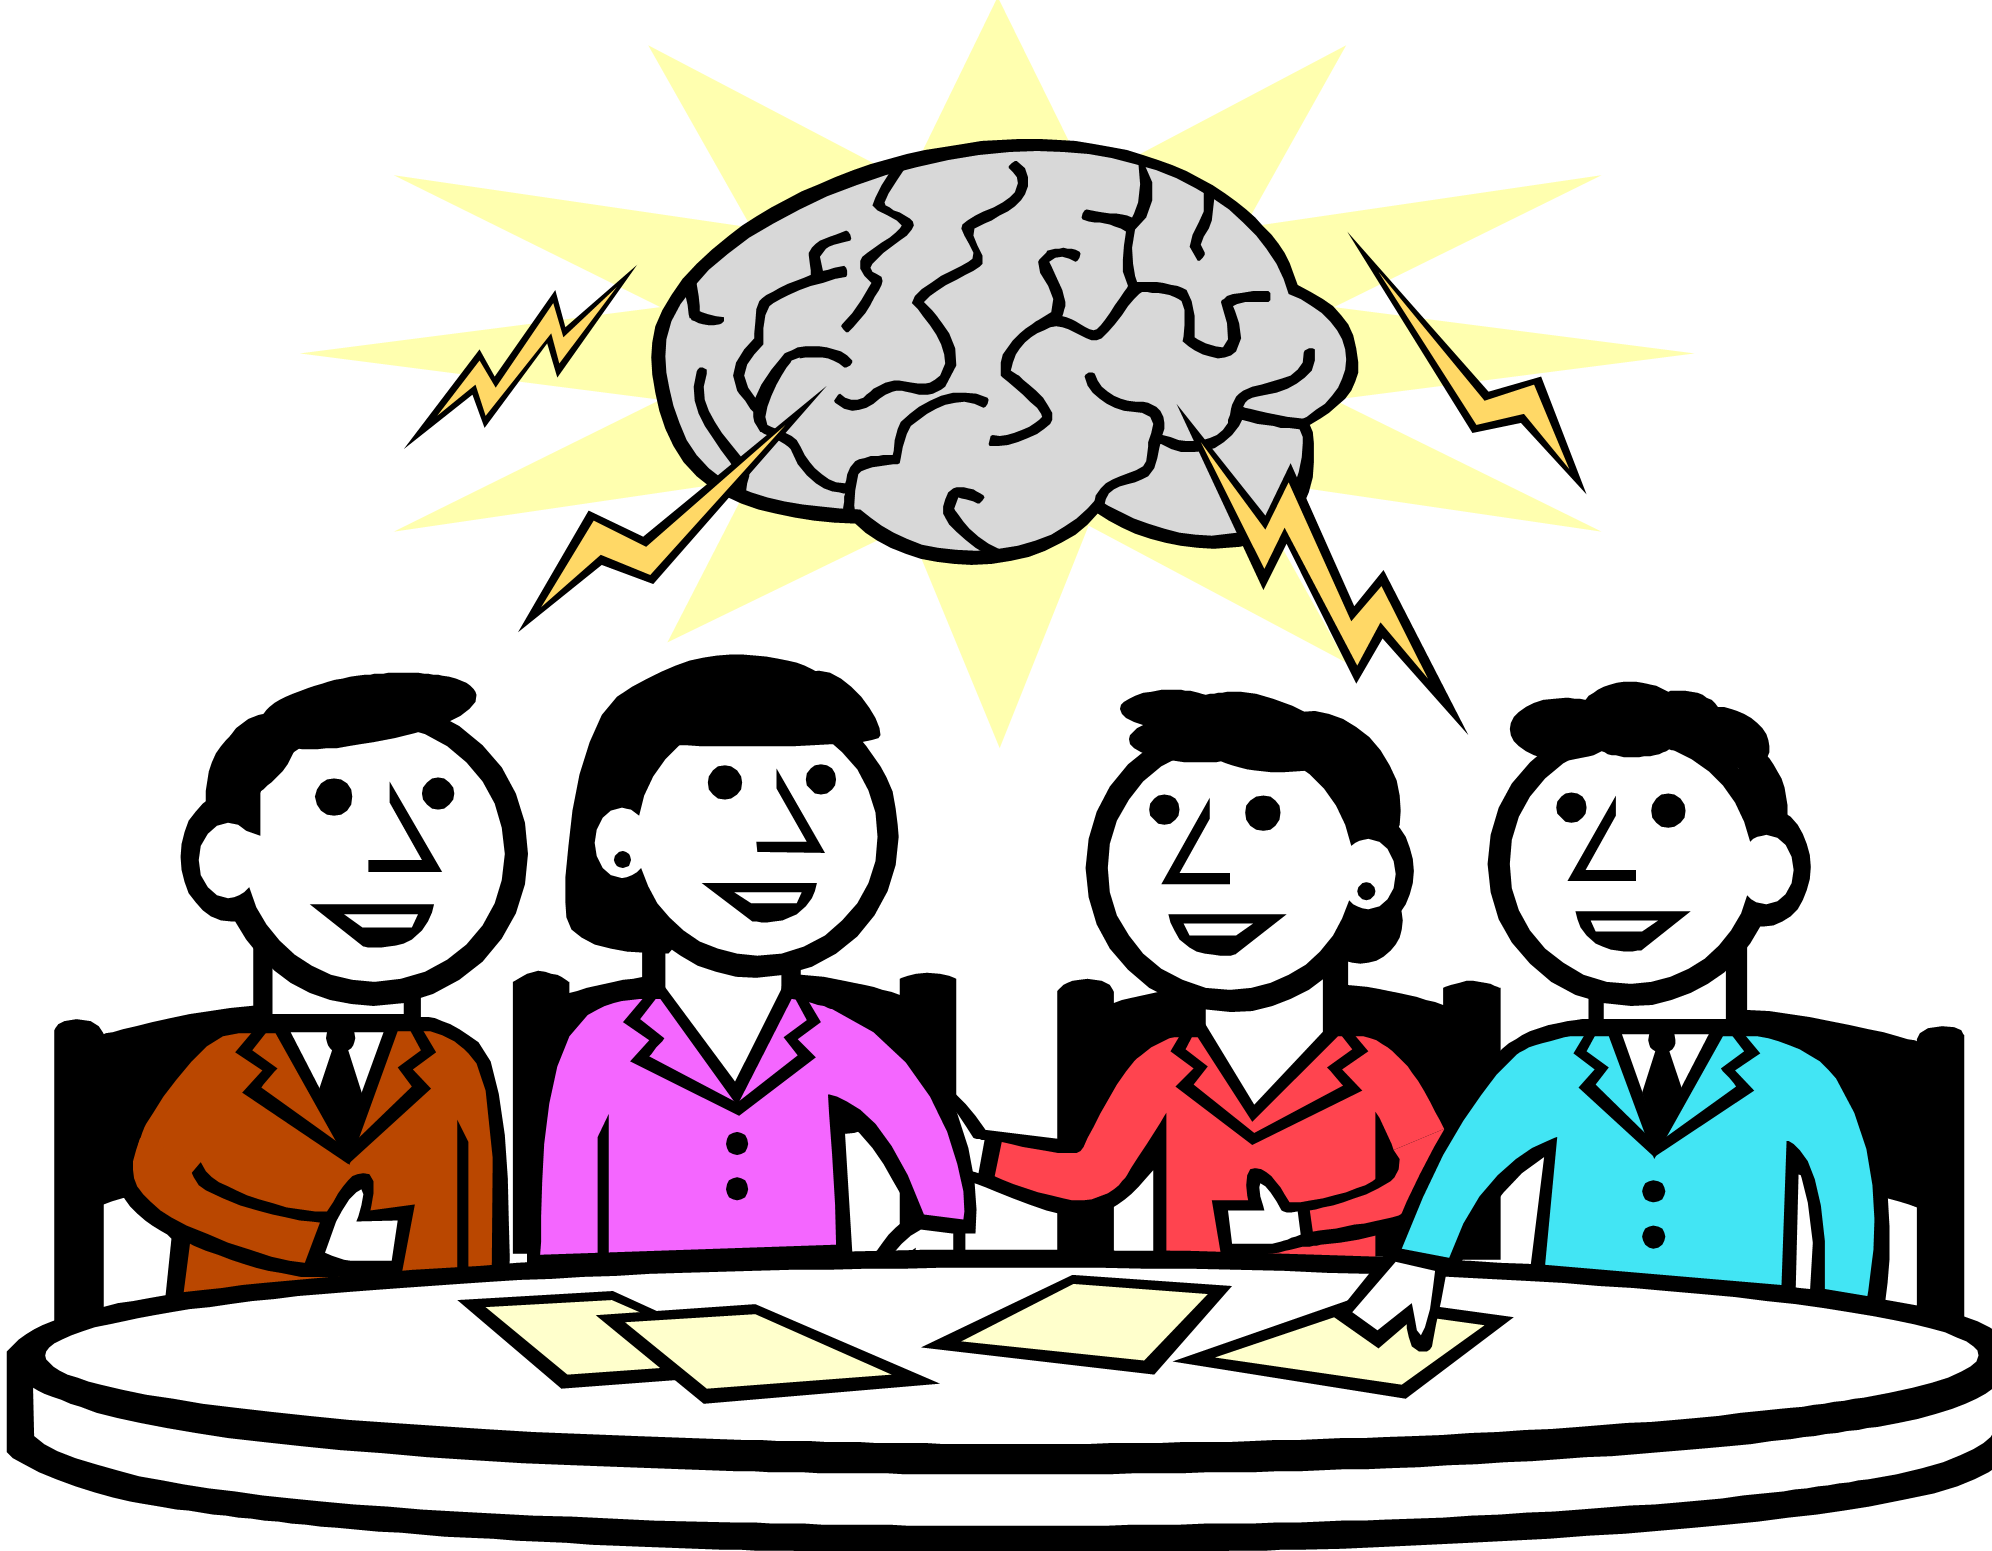 Free brainstorming session cliparts. Brainstorm clipart